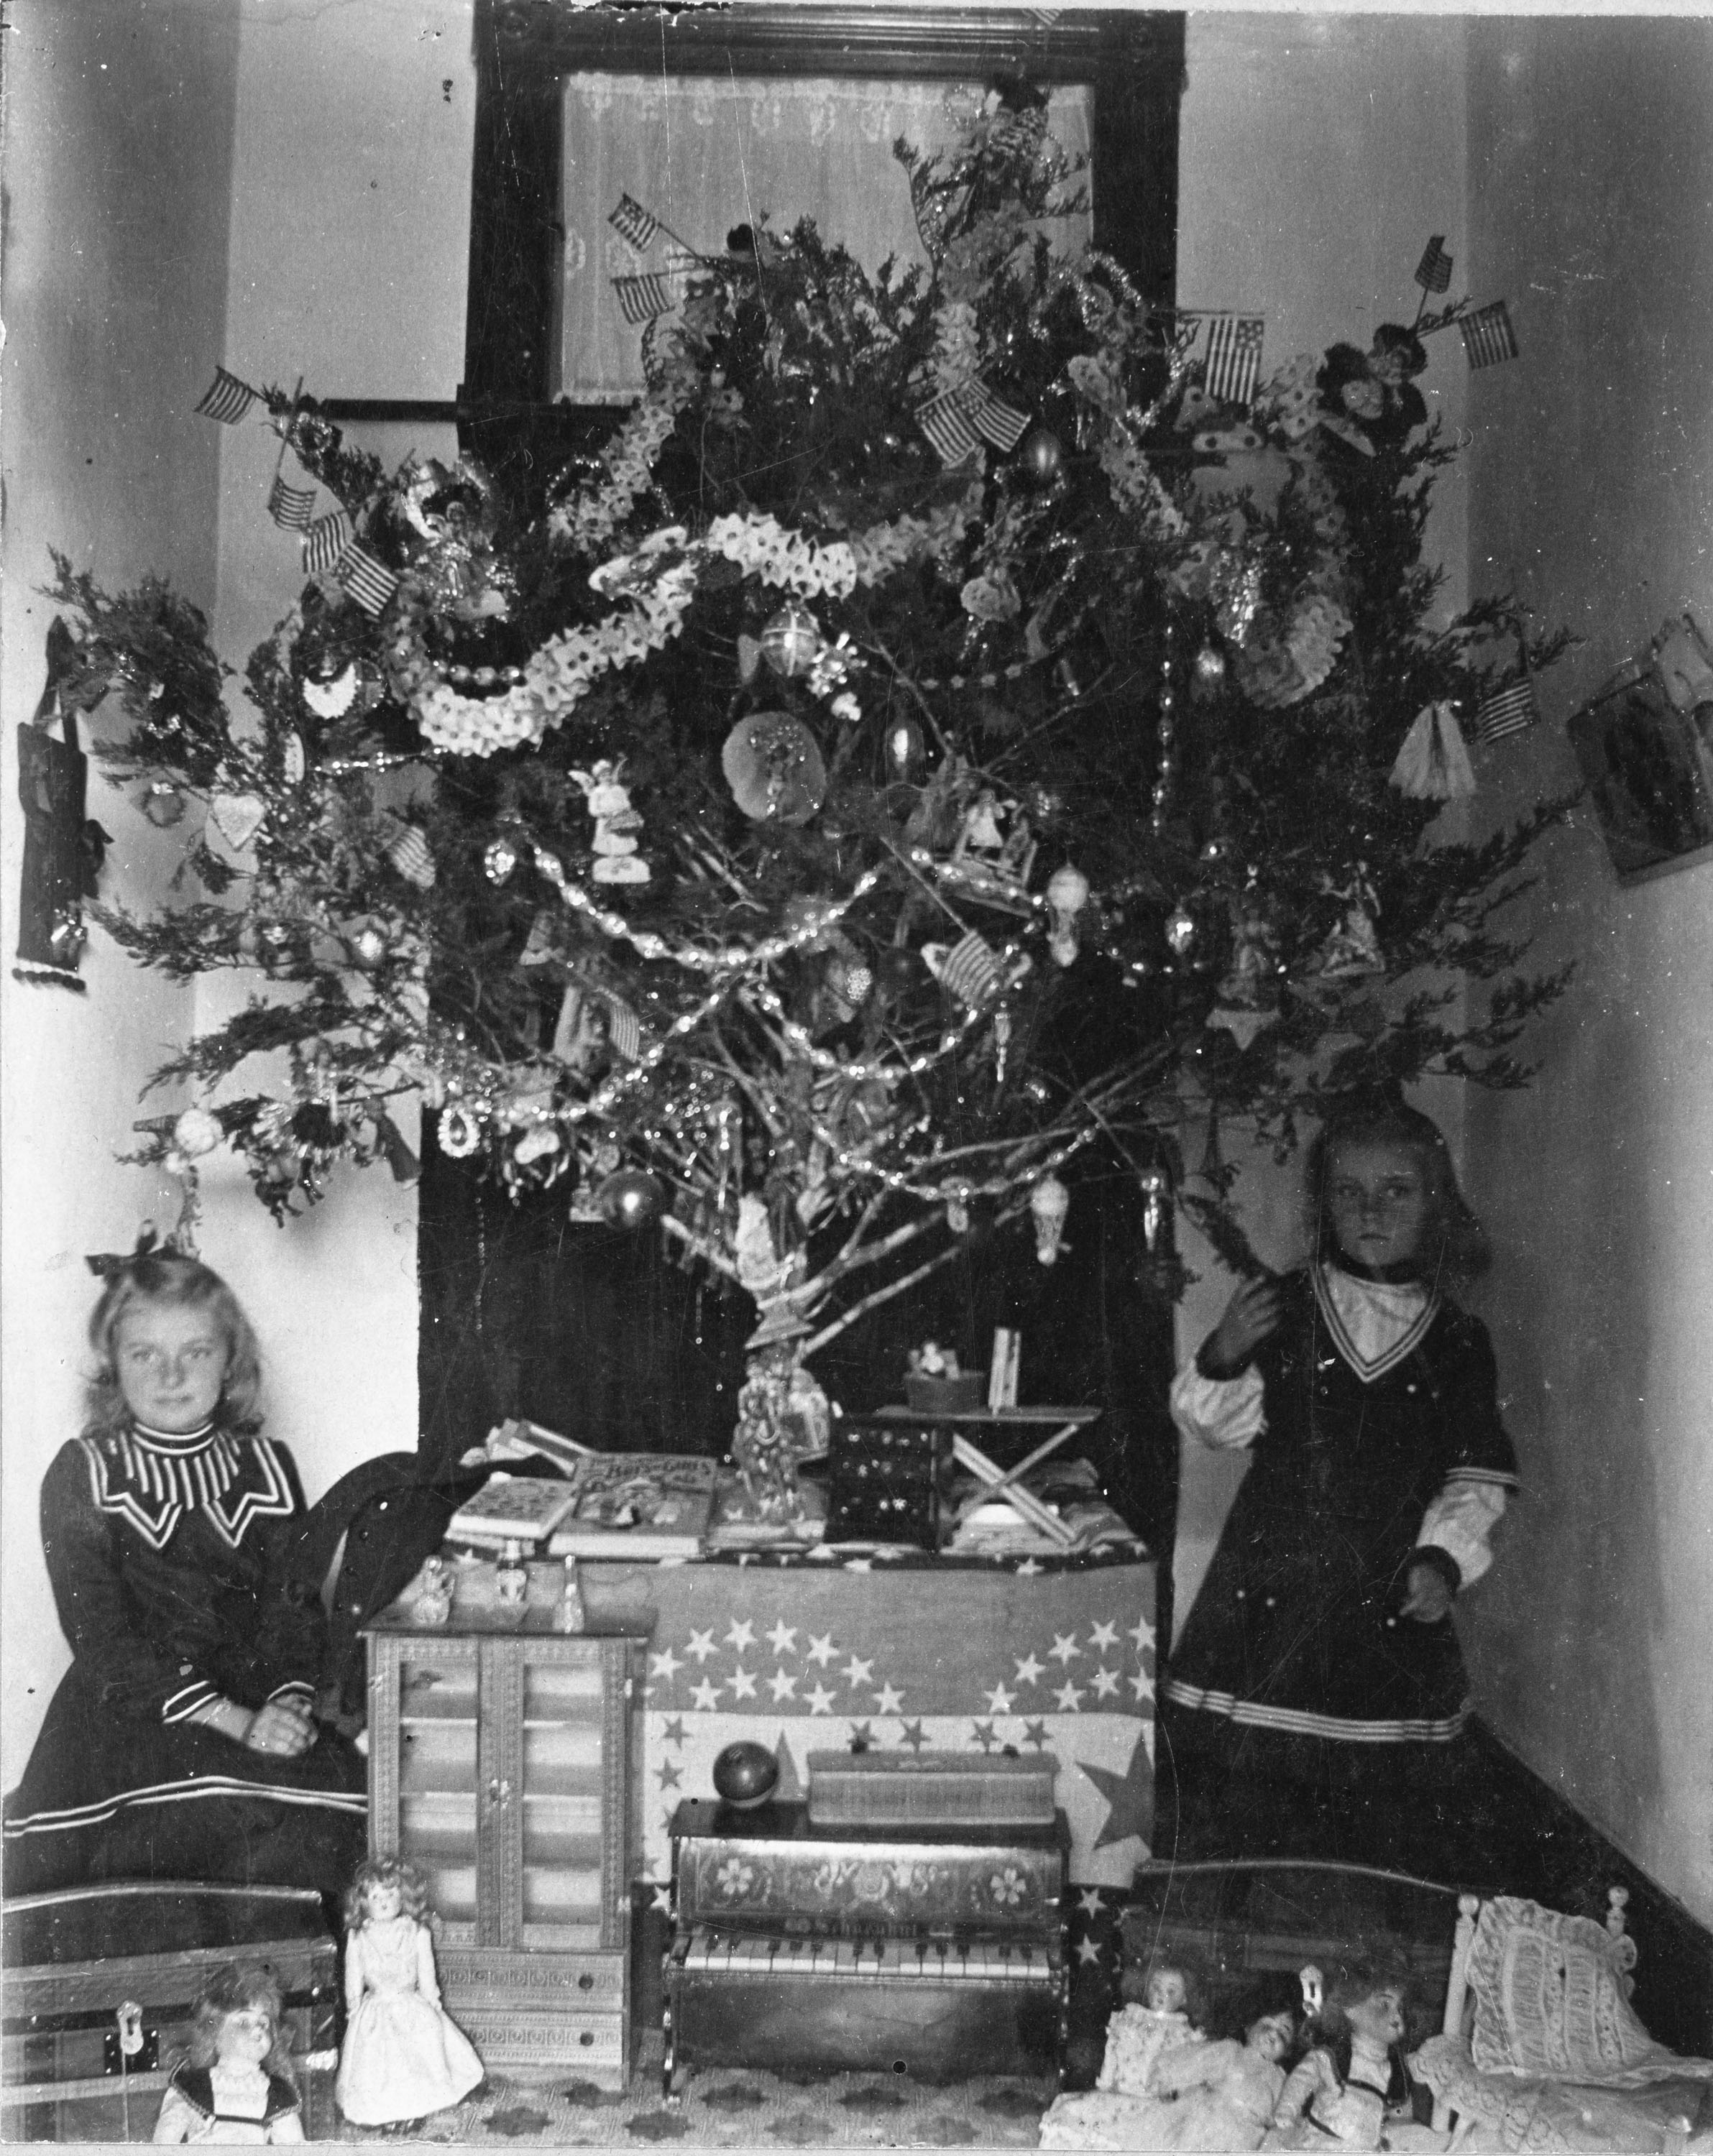 Olden Days Christmas Tree Decorations